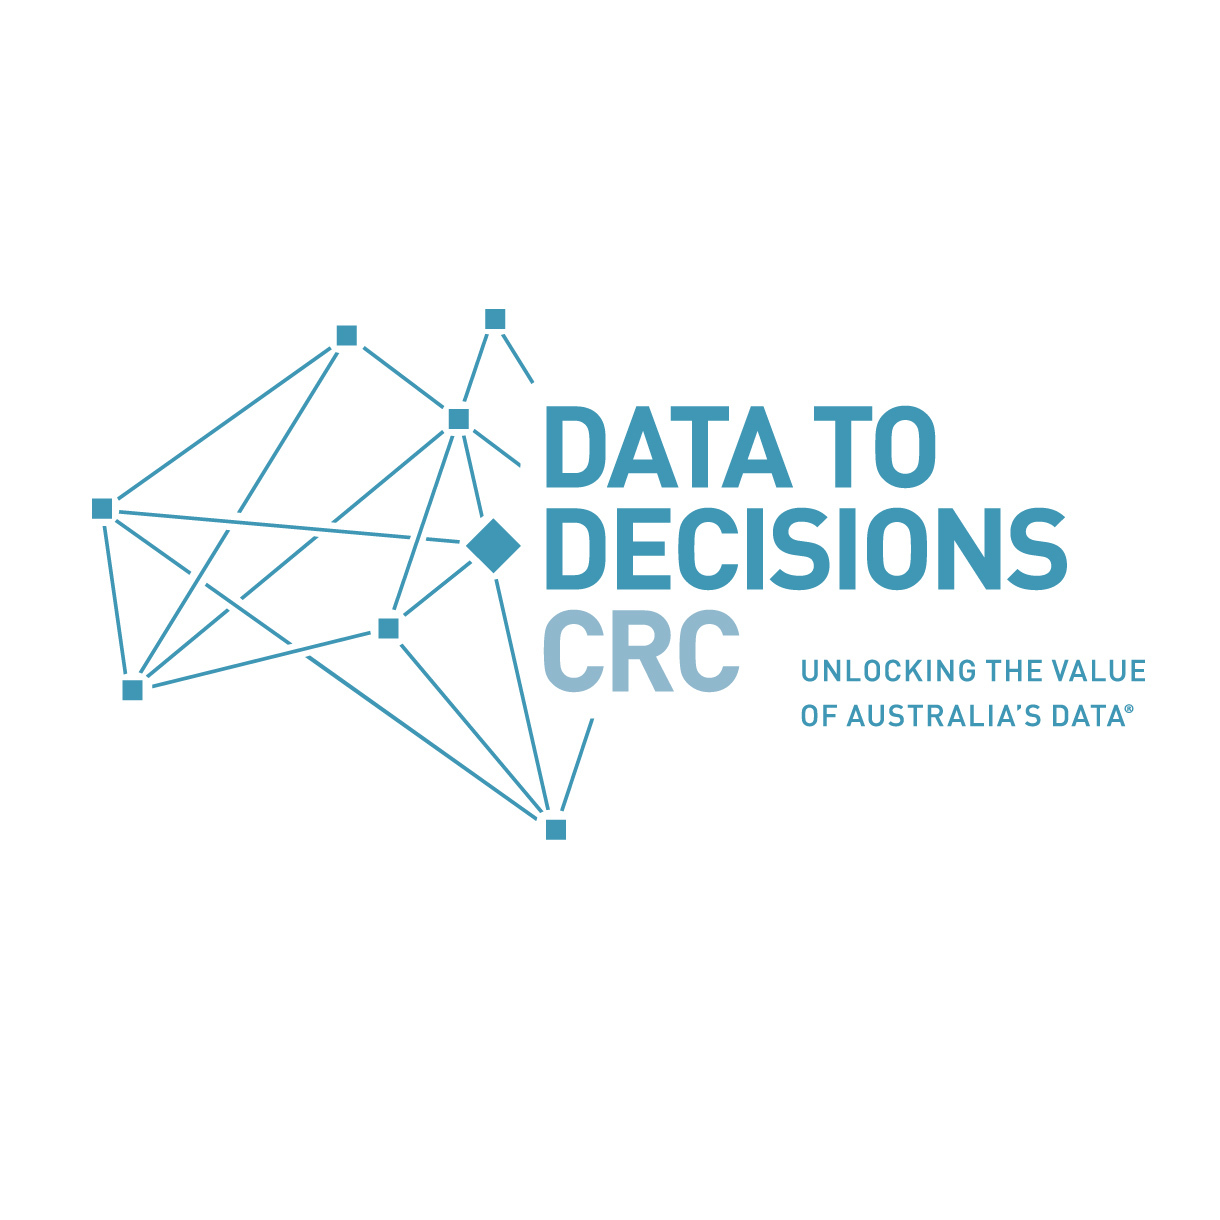 Data To Decisions CRC